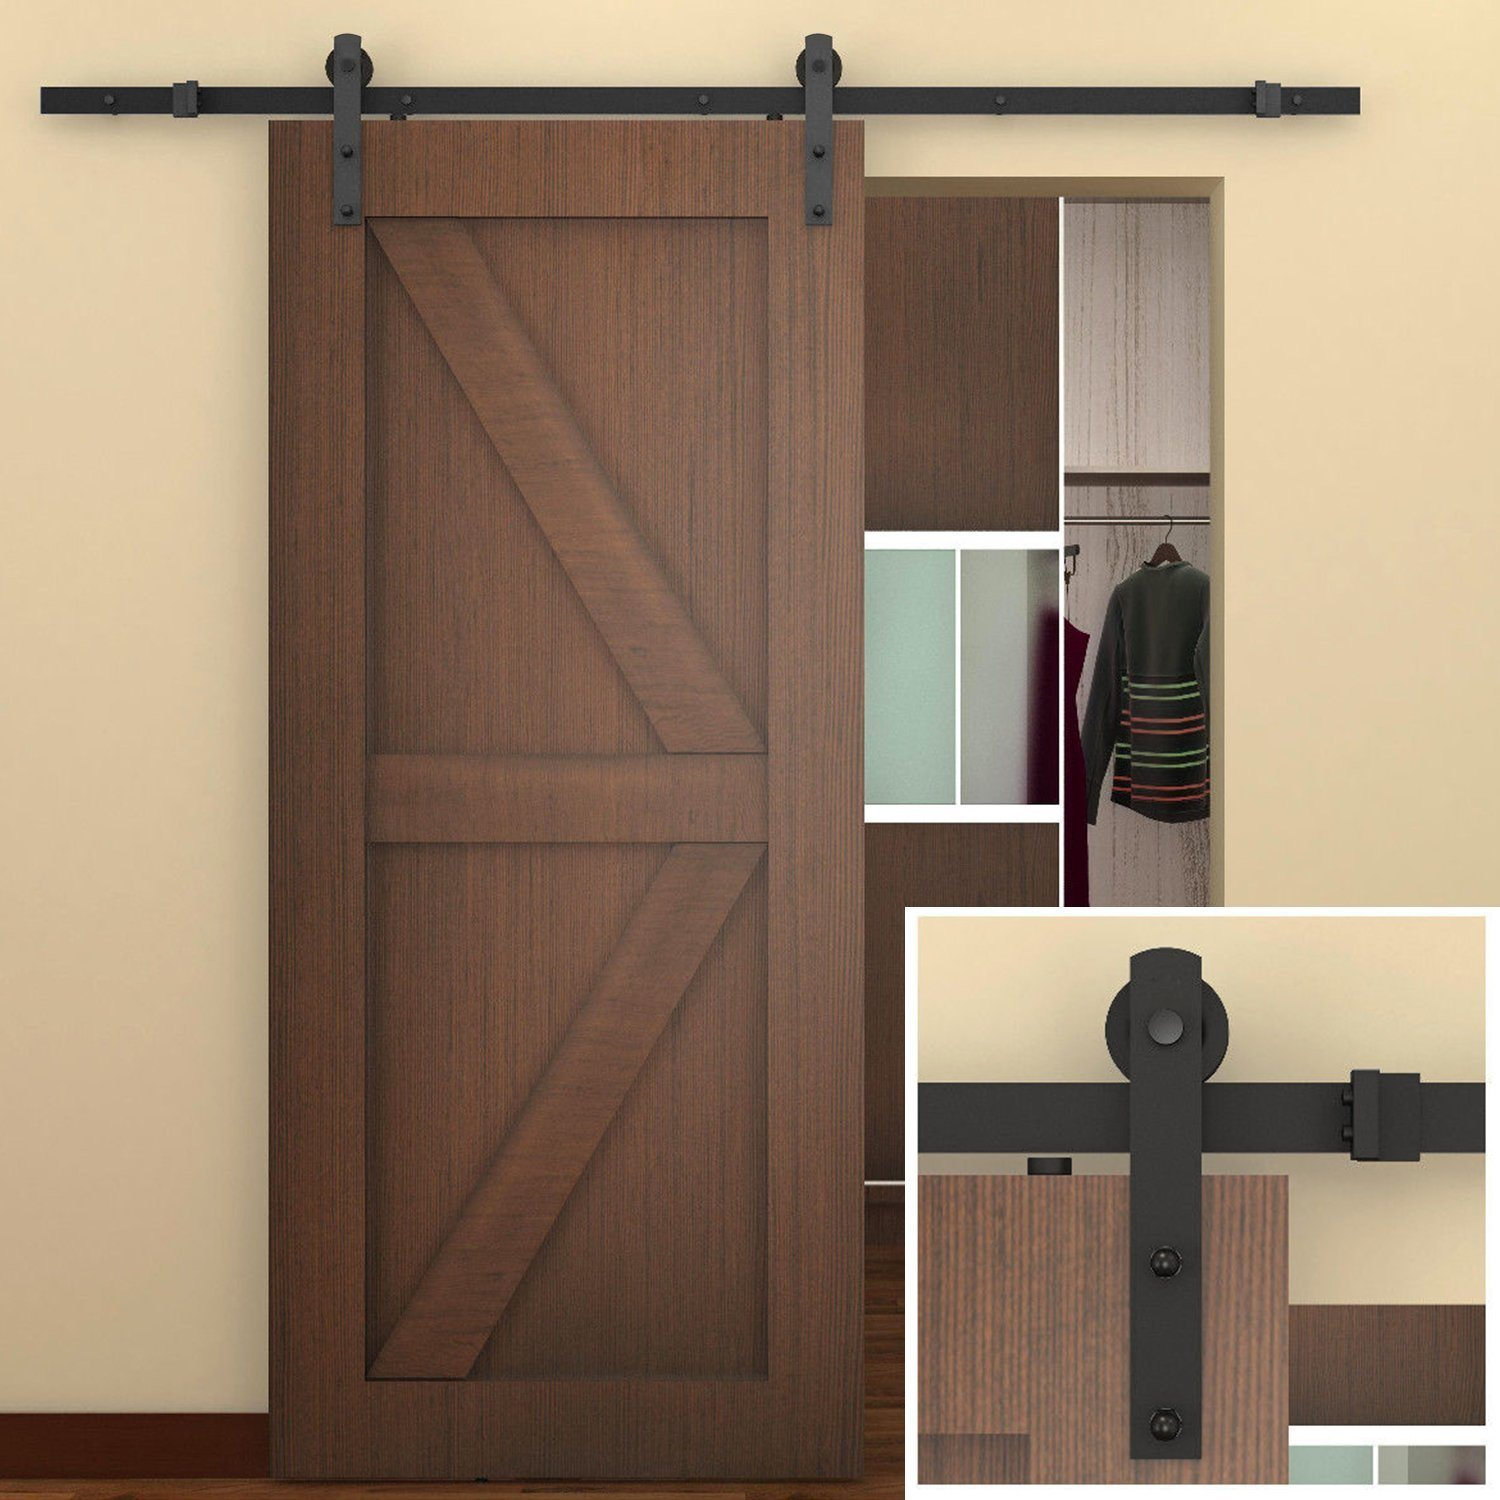 China Suppliers Carbon Steel Sliding Barn Door Hardware Zyc 03